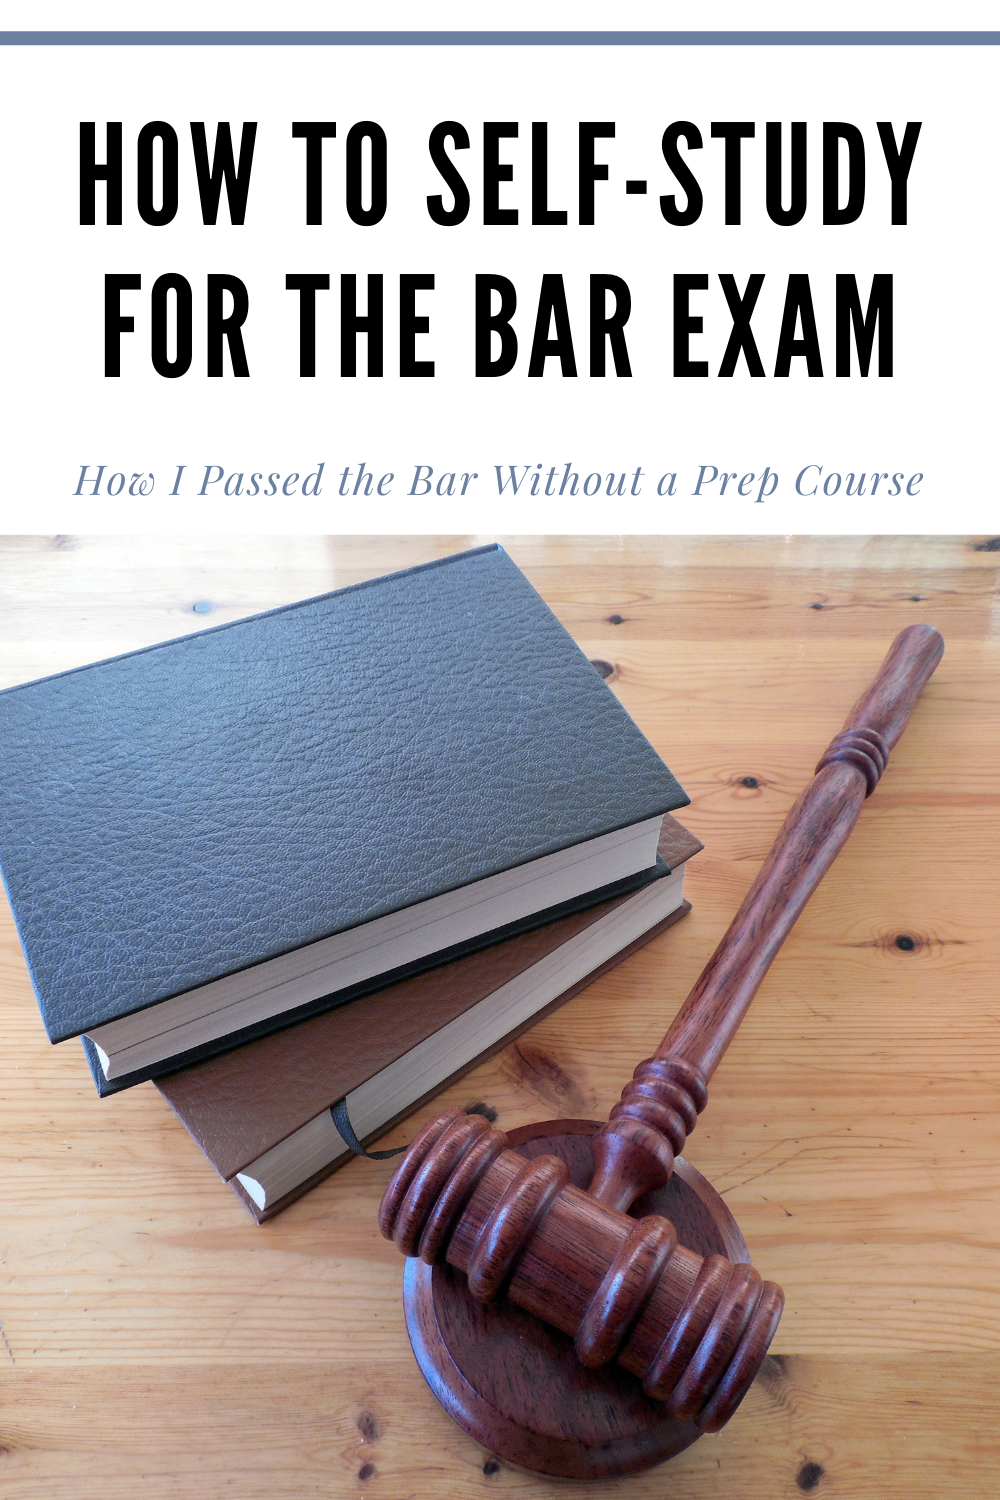 How to Self-Study for the Bar Exam